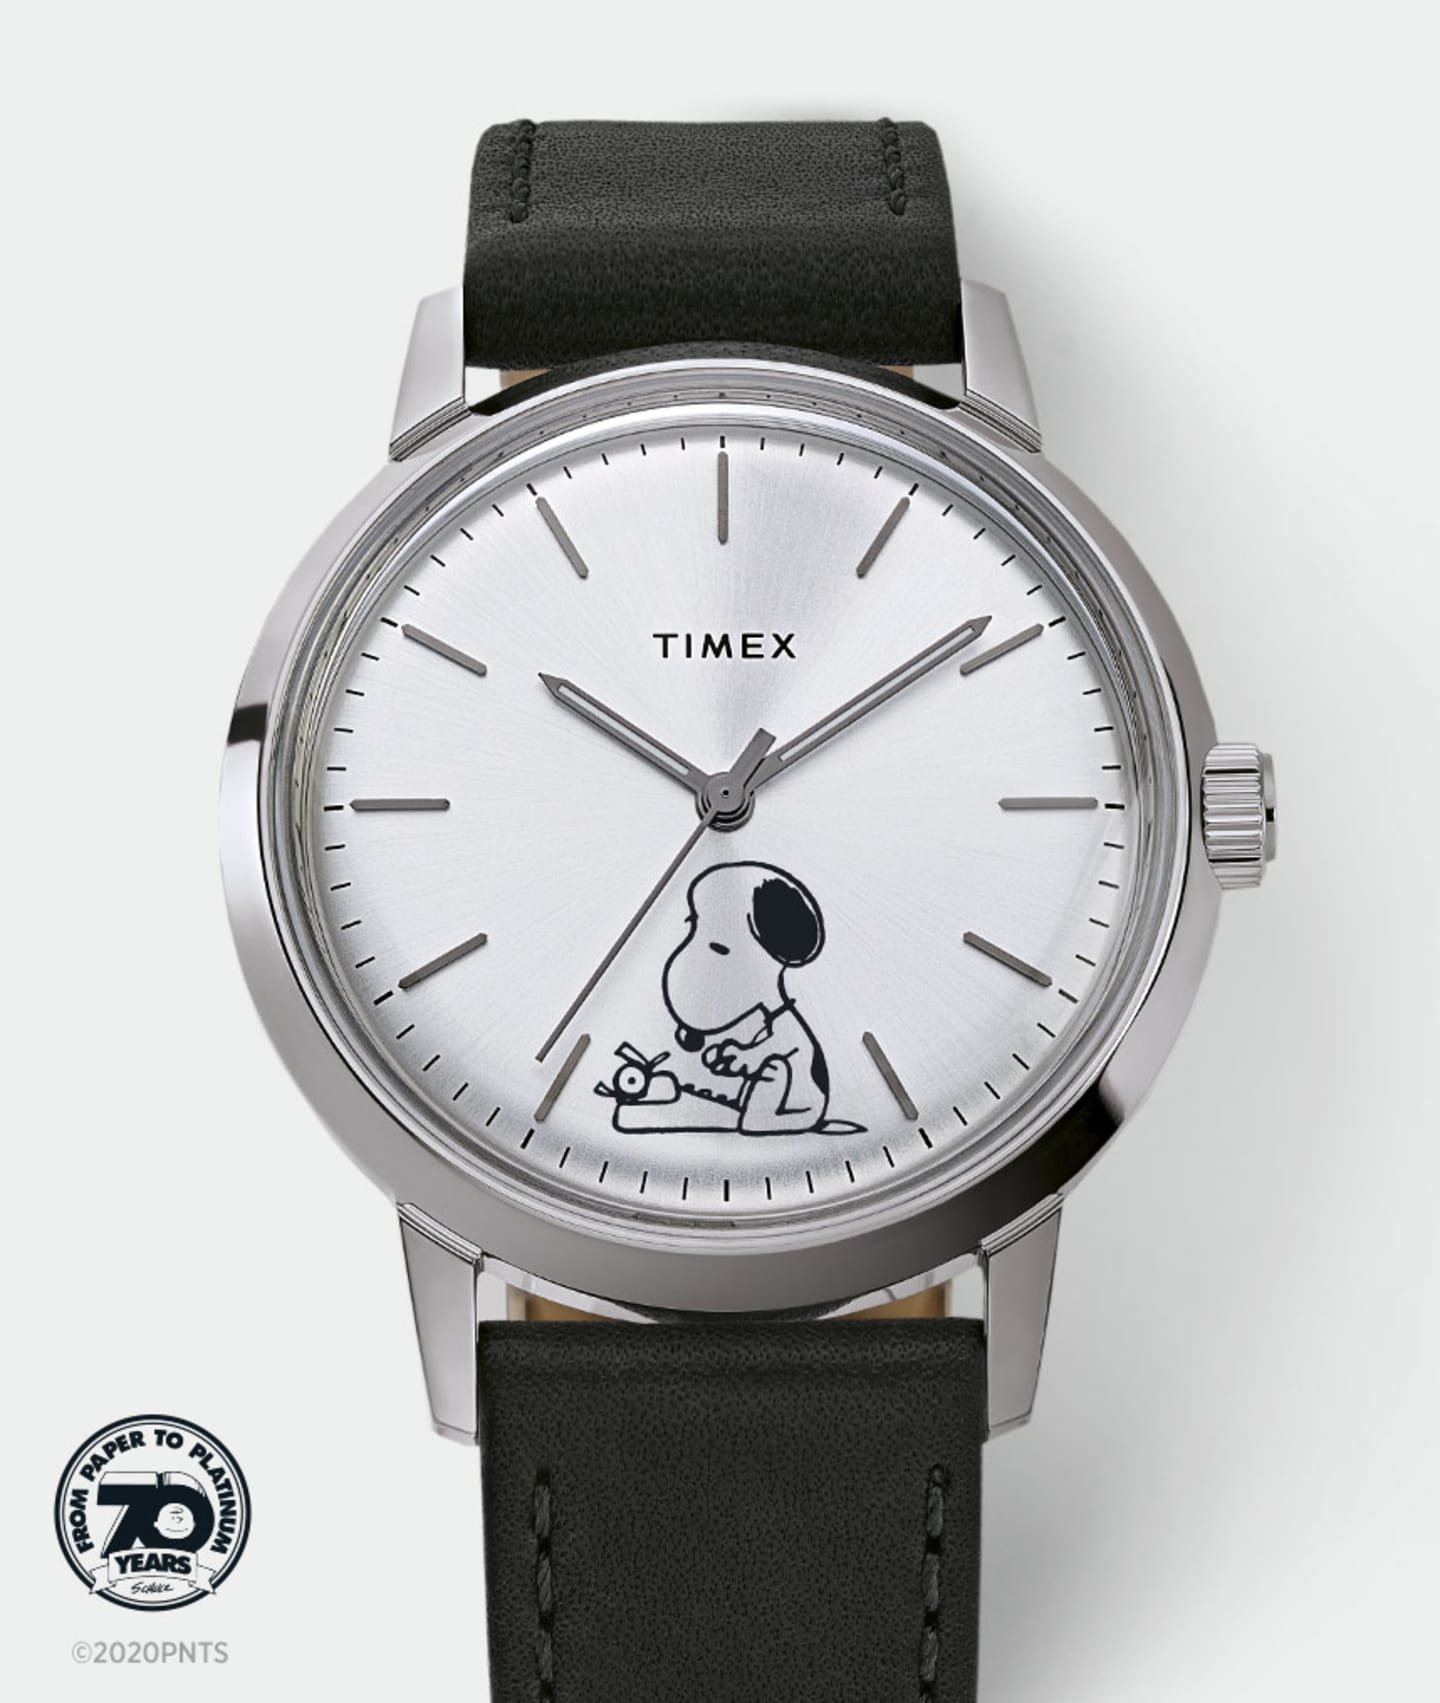 Marlin Snoopy Typing Watch.